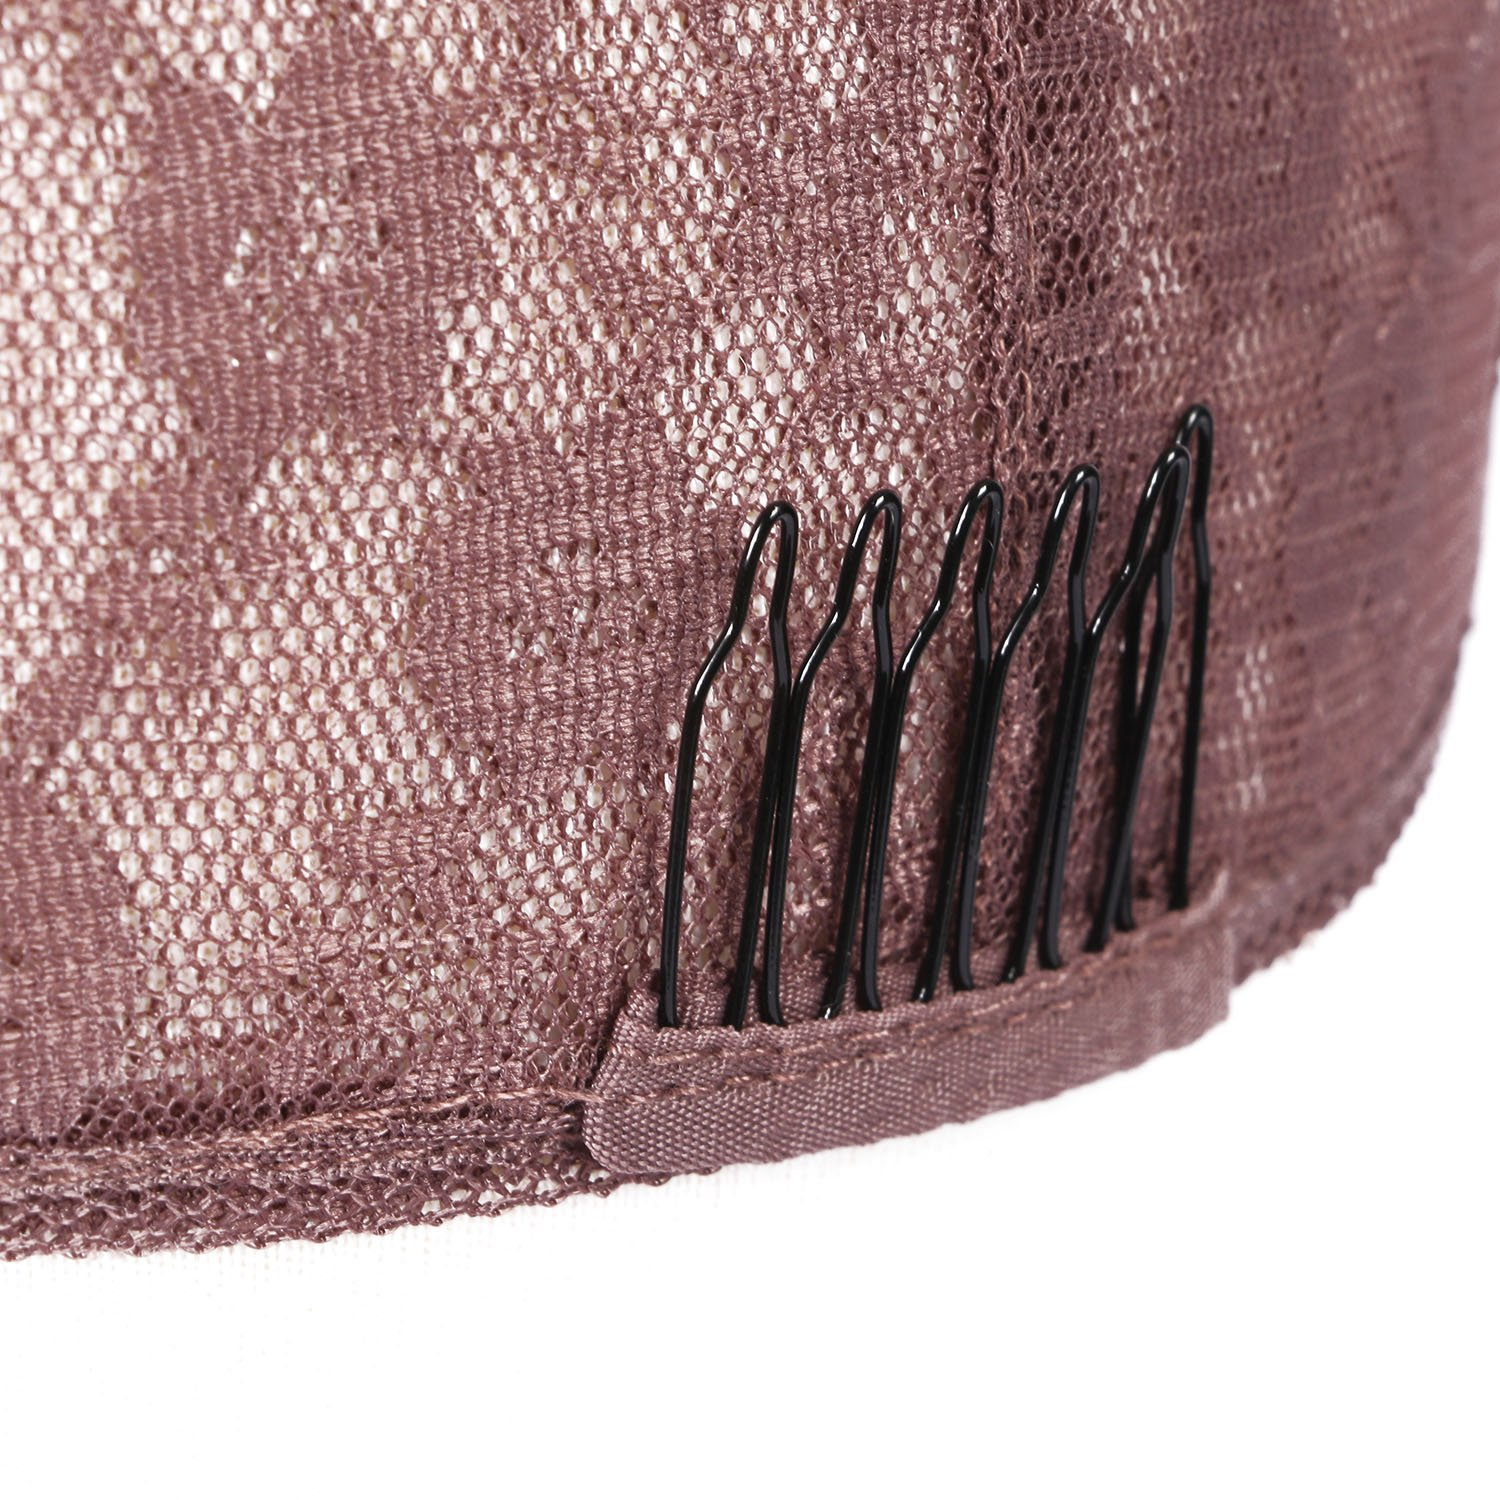 G-EASY Double Lace Wig Caps For Making Wigs Hair Net with Adjustable Straps Swiss Lace Full Wig Medium Size Glueless (Large Cap, Medium Brown) by G-EASY (Image #4)